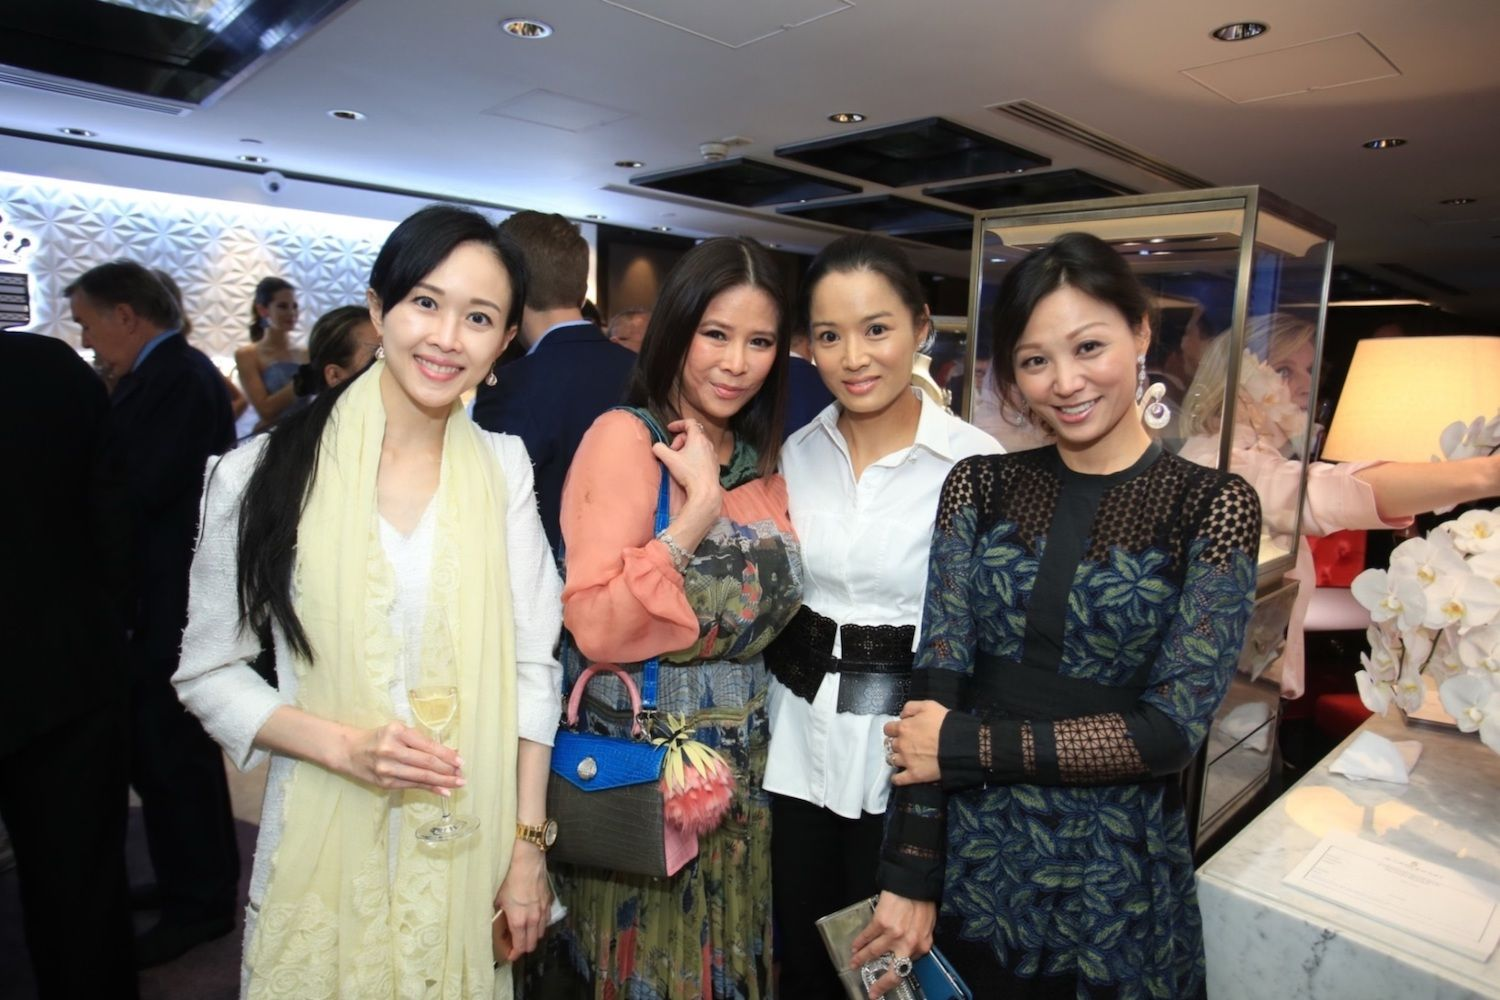 Jacqueline Chow, Yvette Yung, Reggie Li-Kwok and Michelle Cheng-Chan